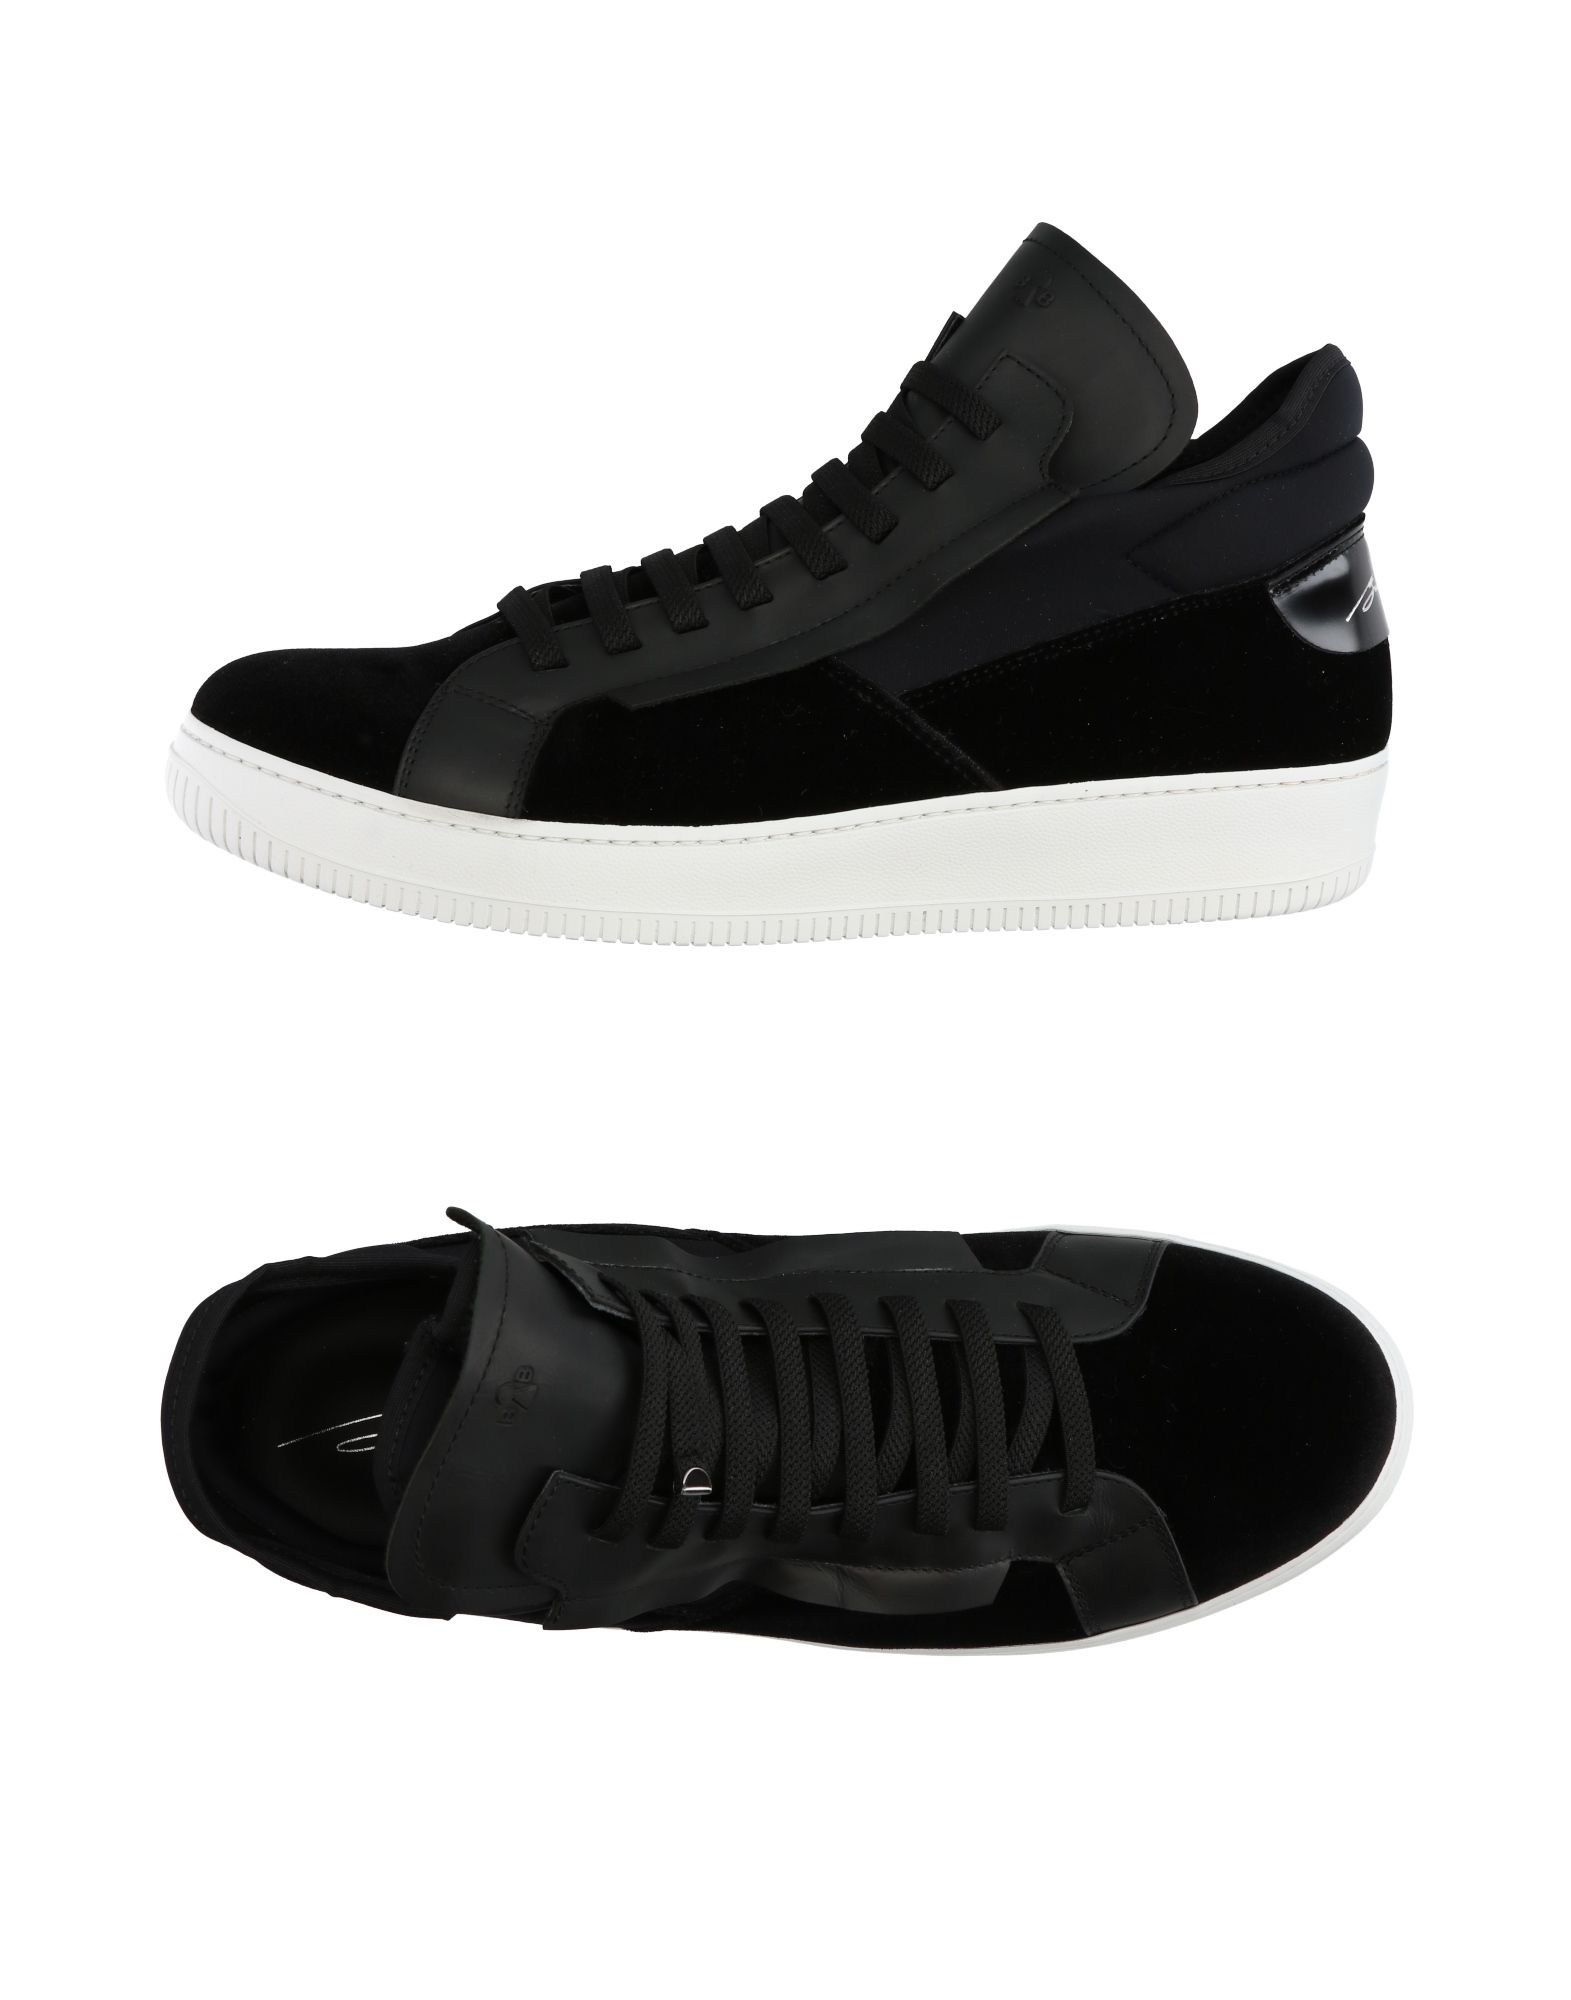 Sneakers Bruno Bordese Homme - Sneakers Bruno Bordese sur